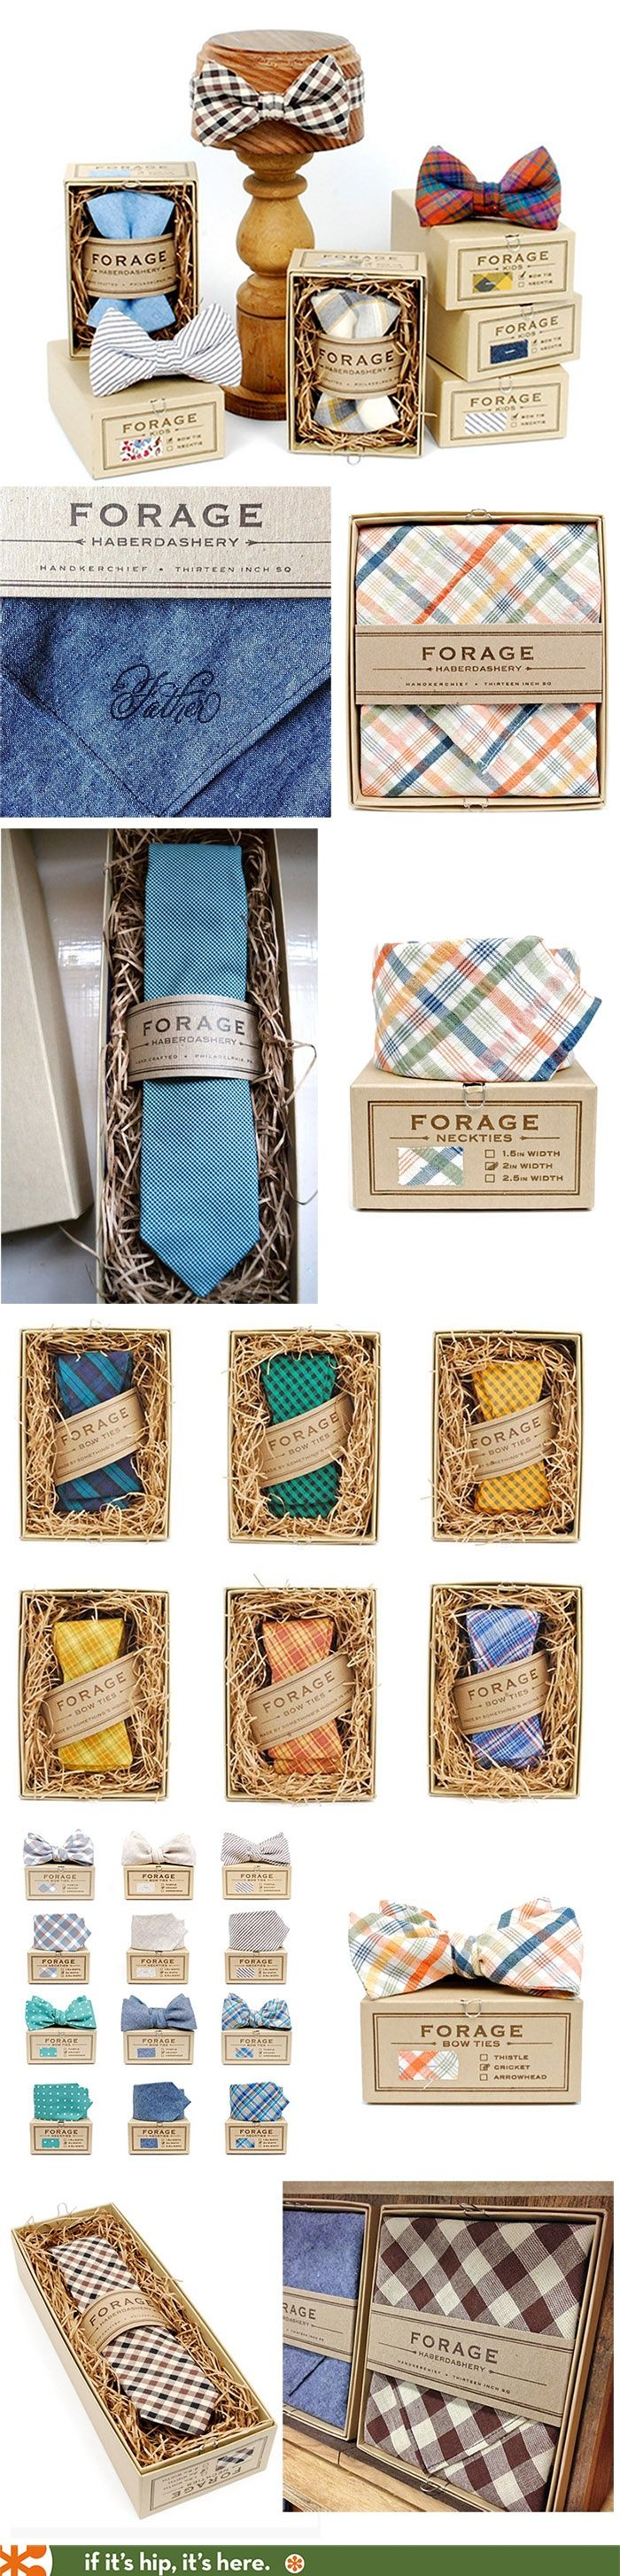 ties. Forage Haberdashery has beautiful 100% recycled packaging and they hand print each and every box and letterpress their own tags.